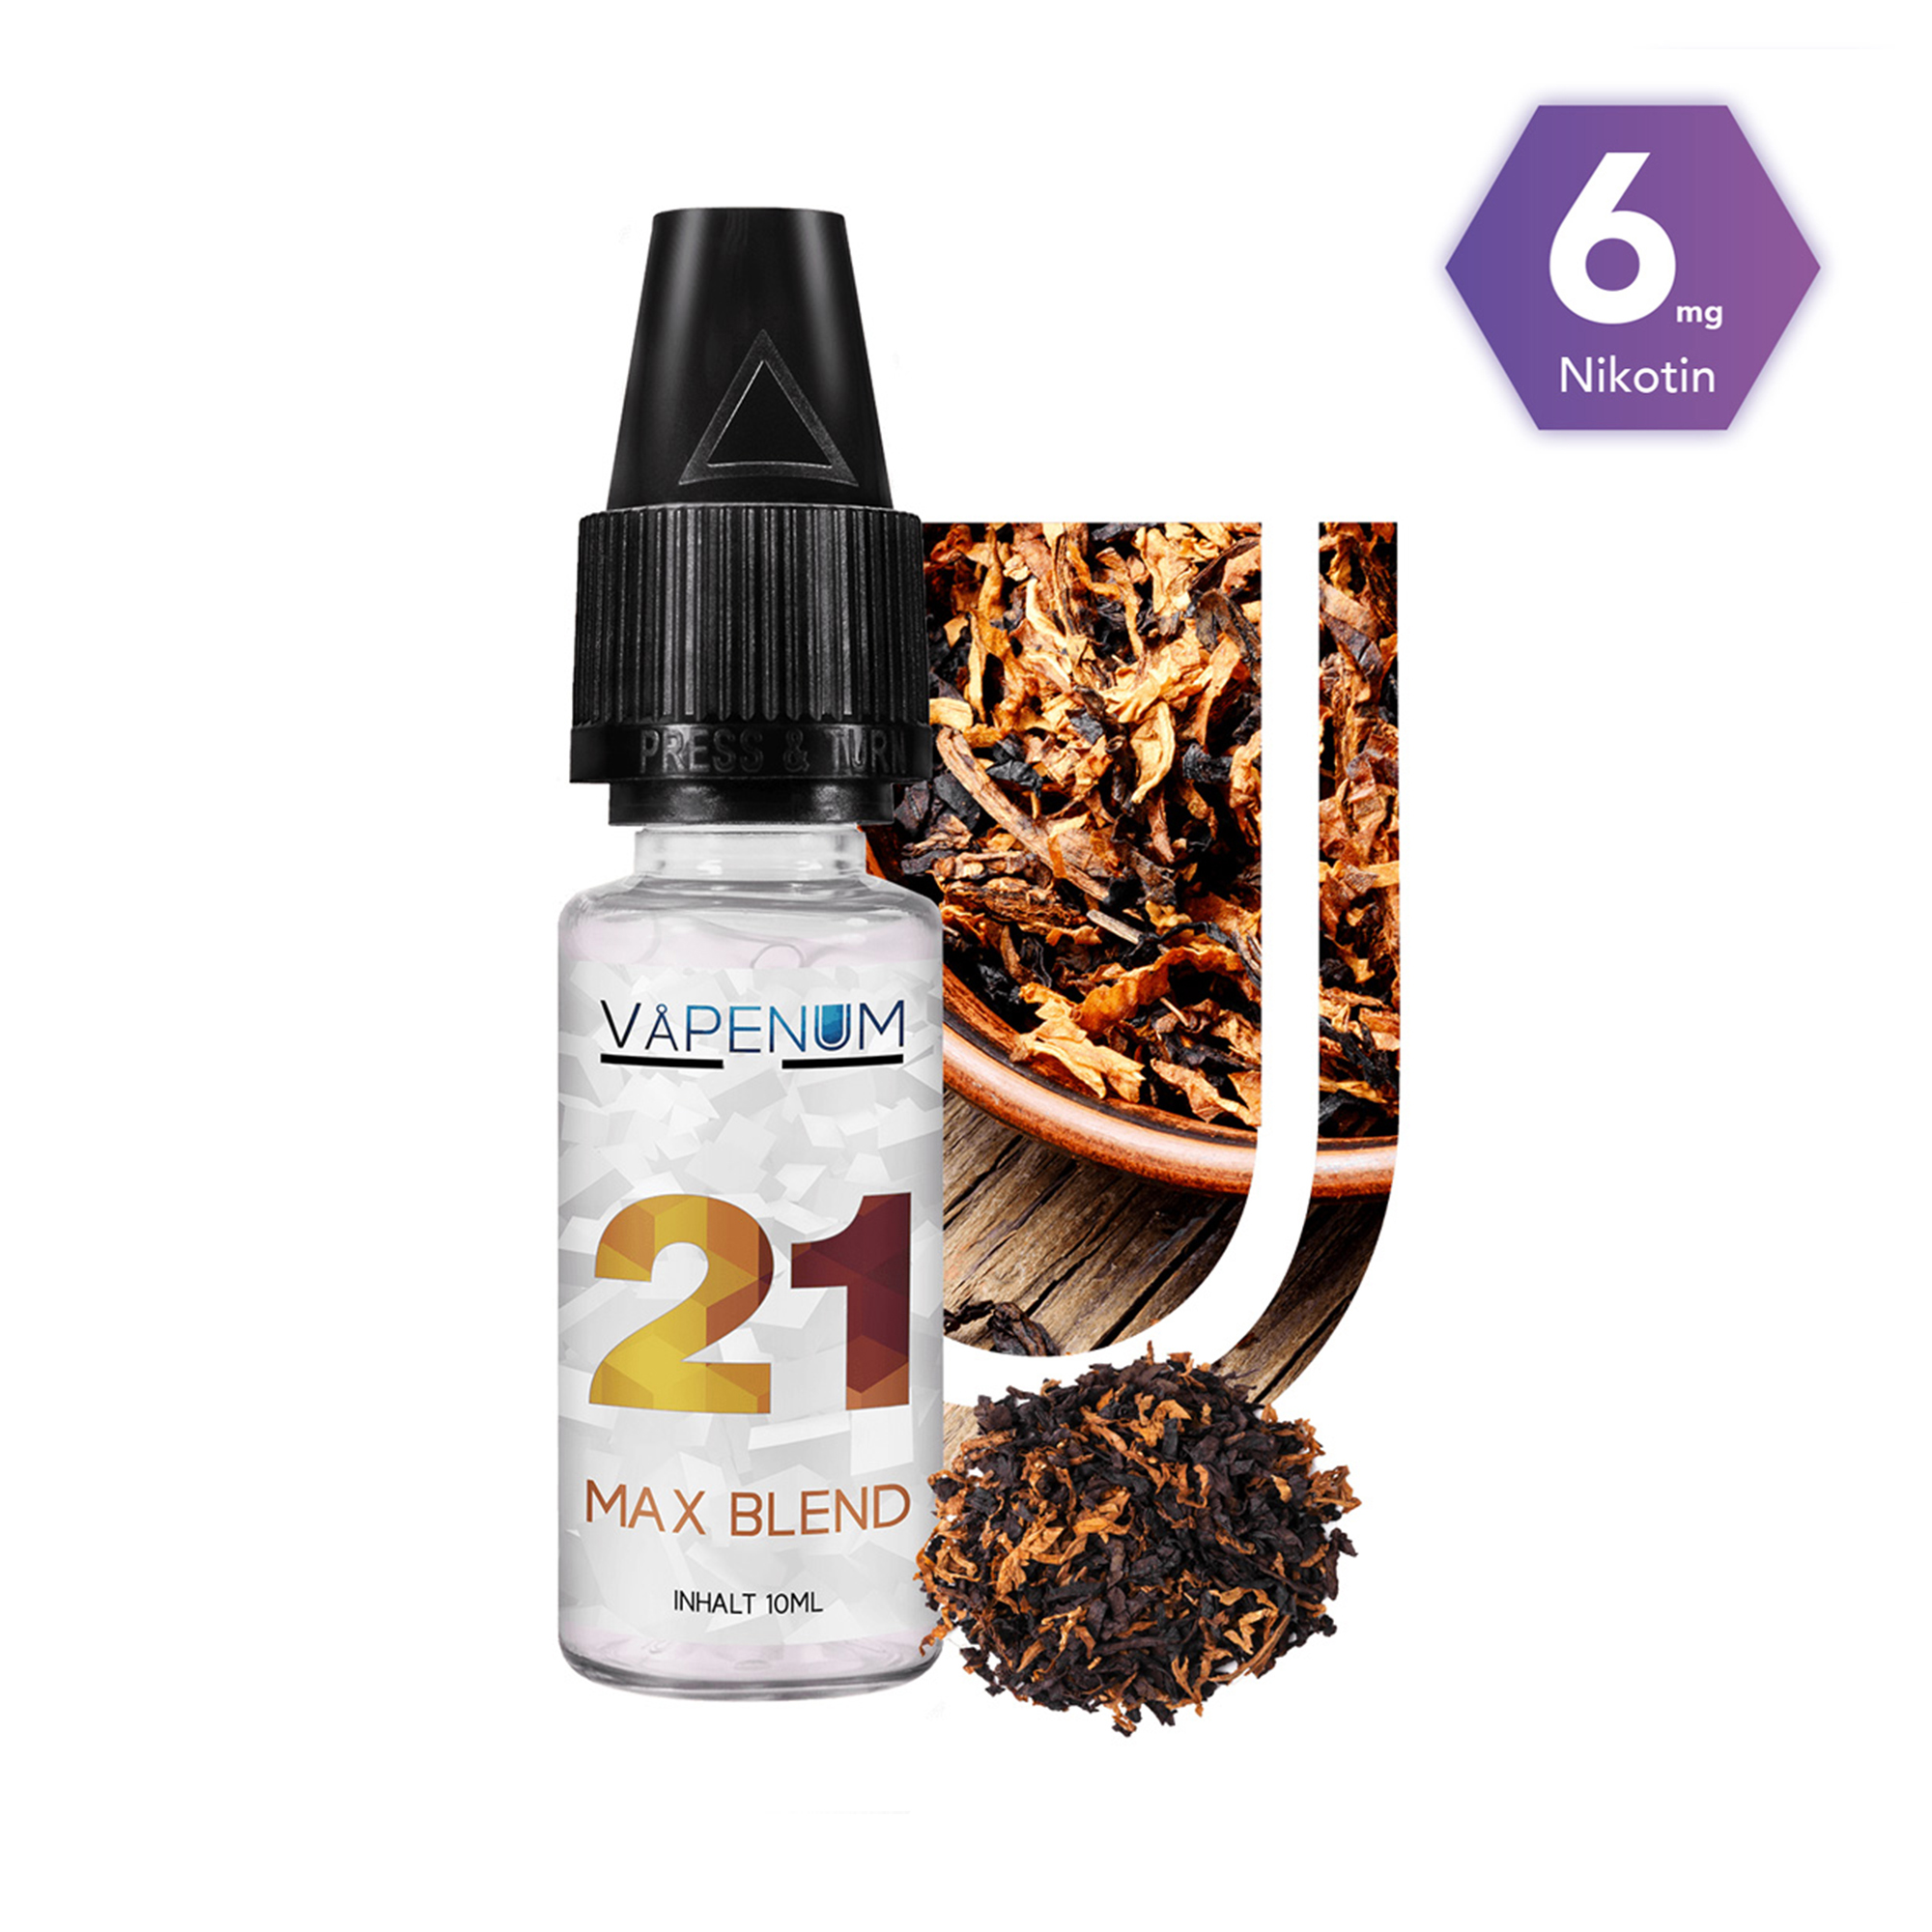 21 - Max Blend Liquid by Vapenum 6mg